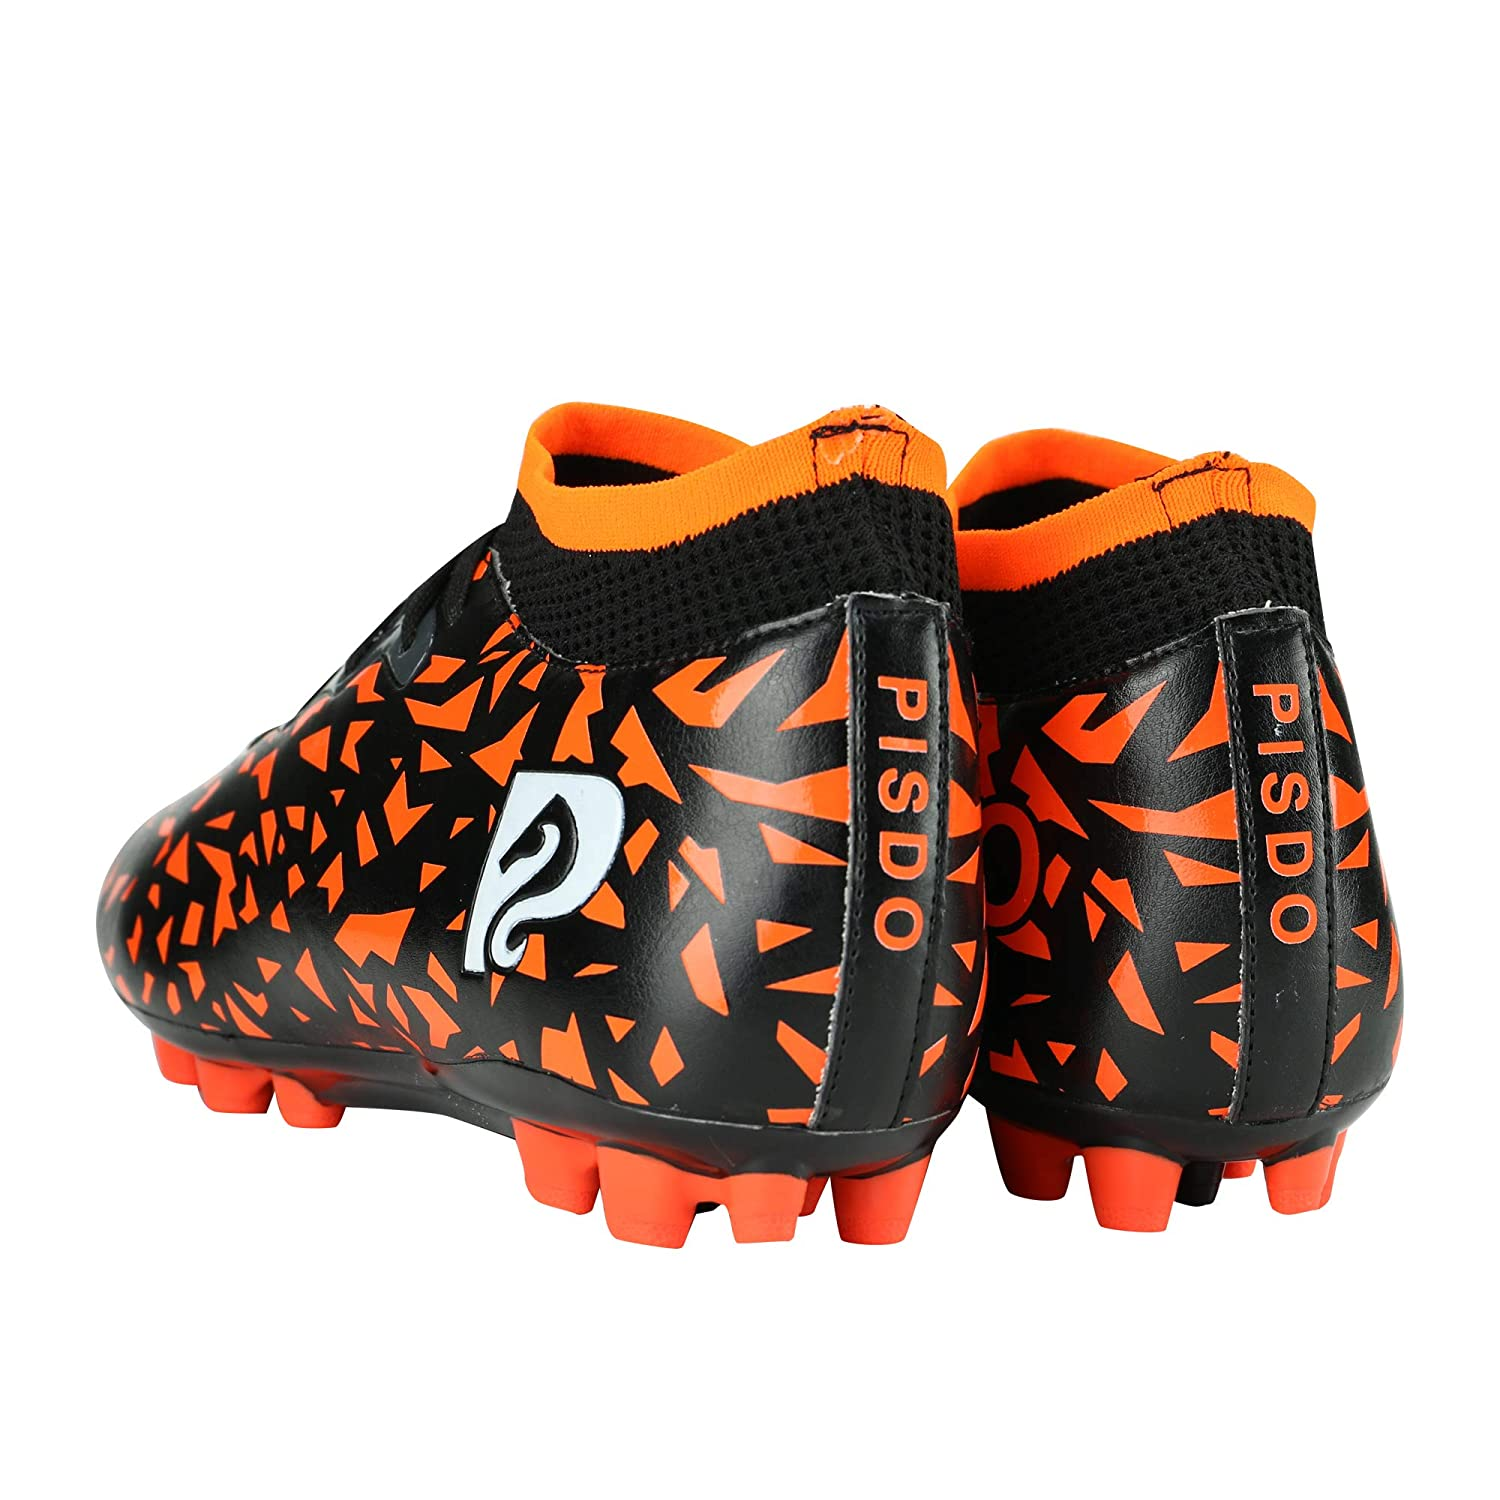 PISDO Mens Soccer Shoes High Ankle Athletic Football Soccer Boots Cleats for Women and Men